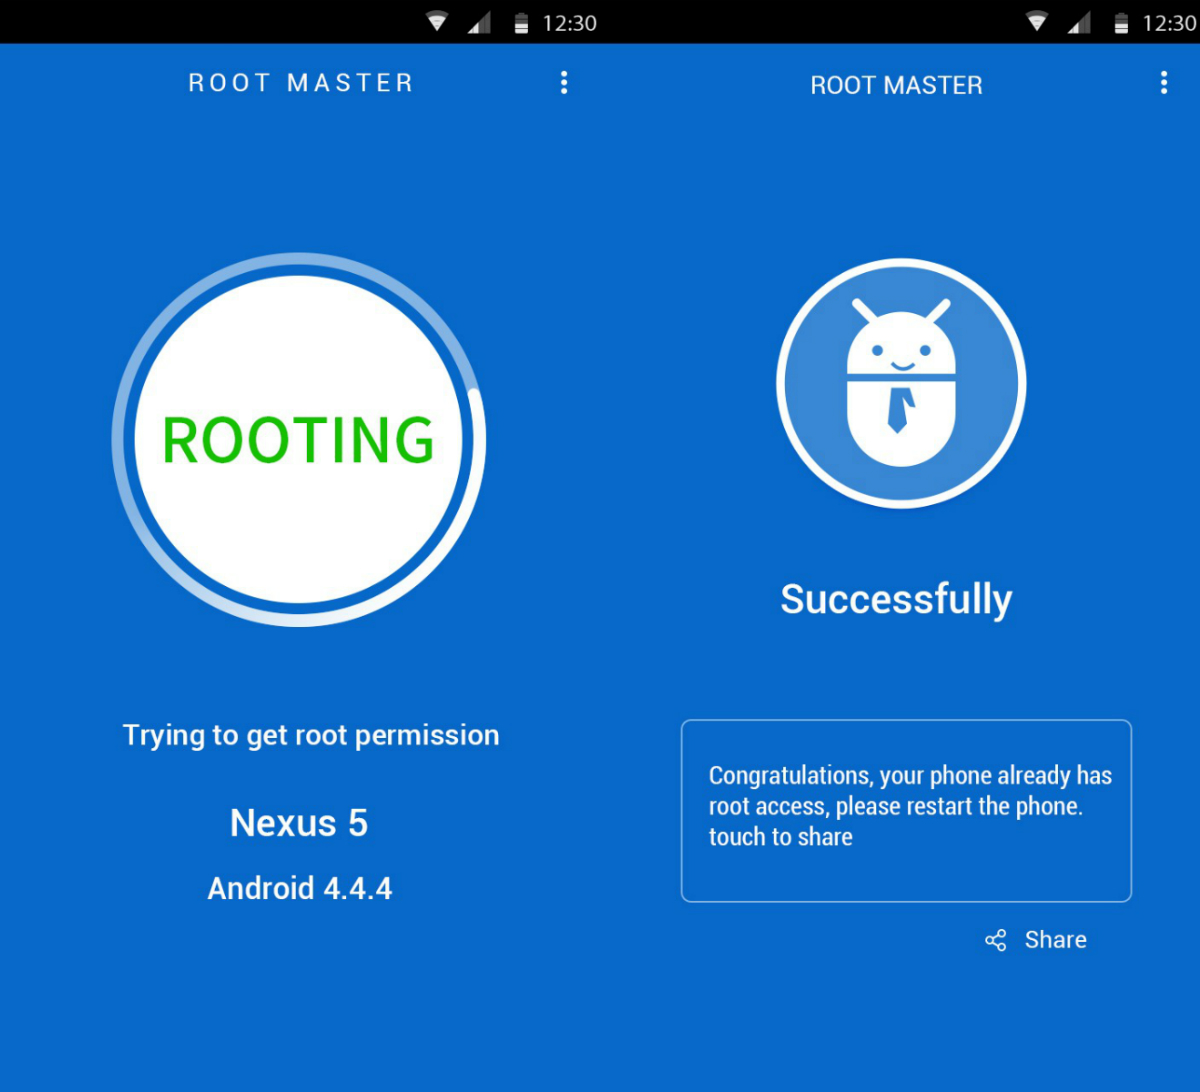 easily root your device with root master review aivanet